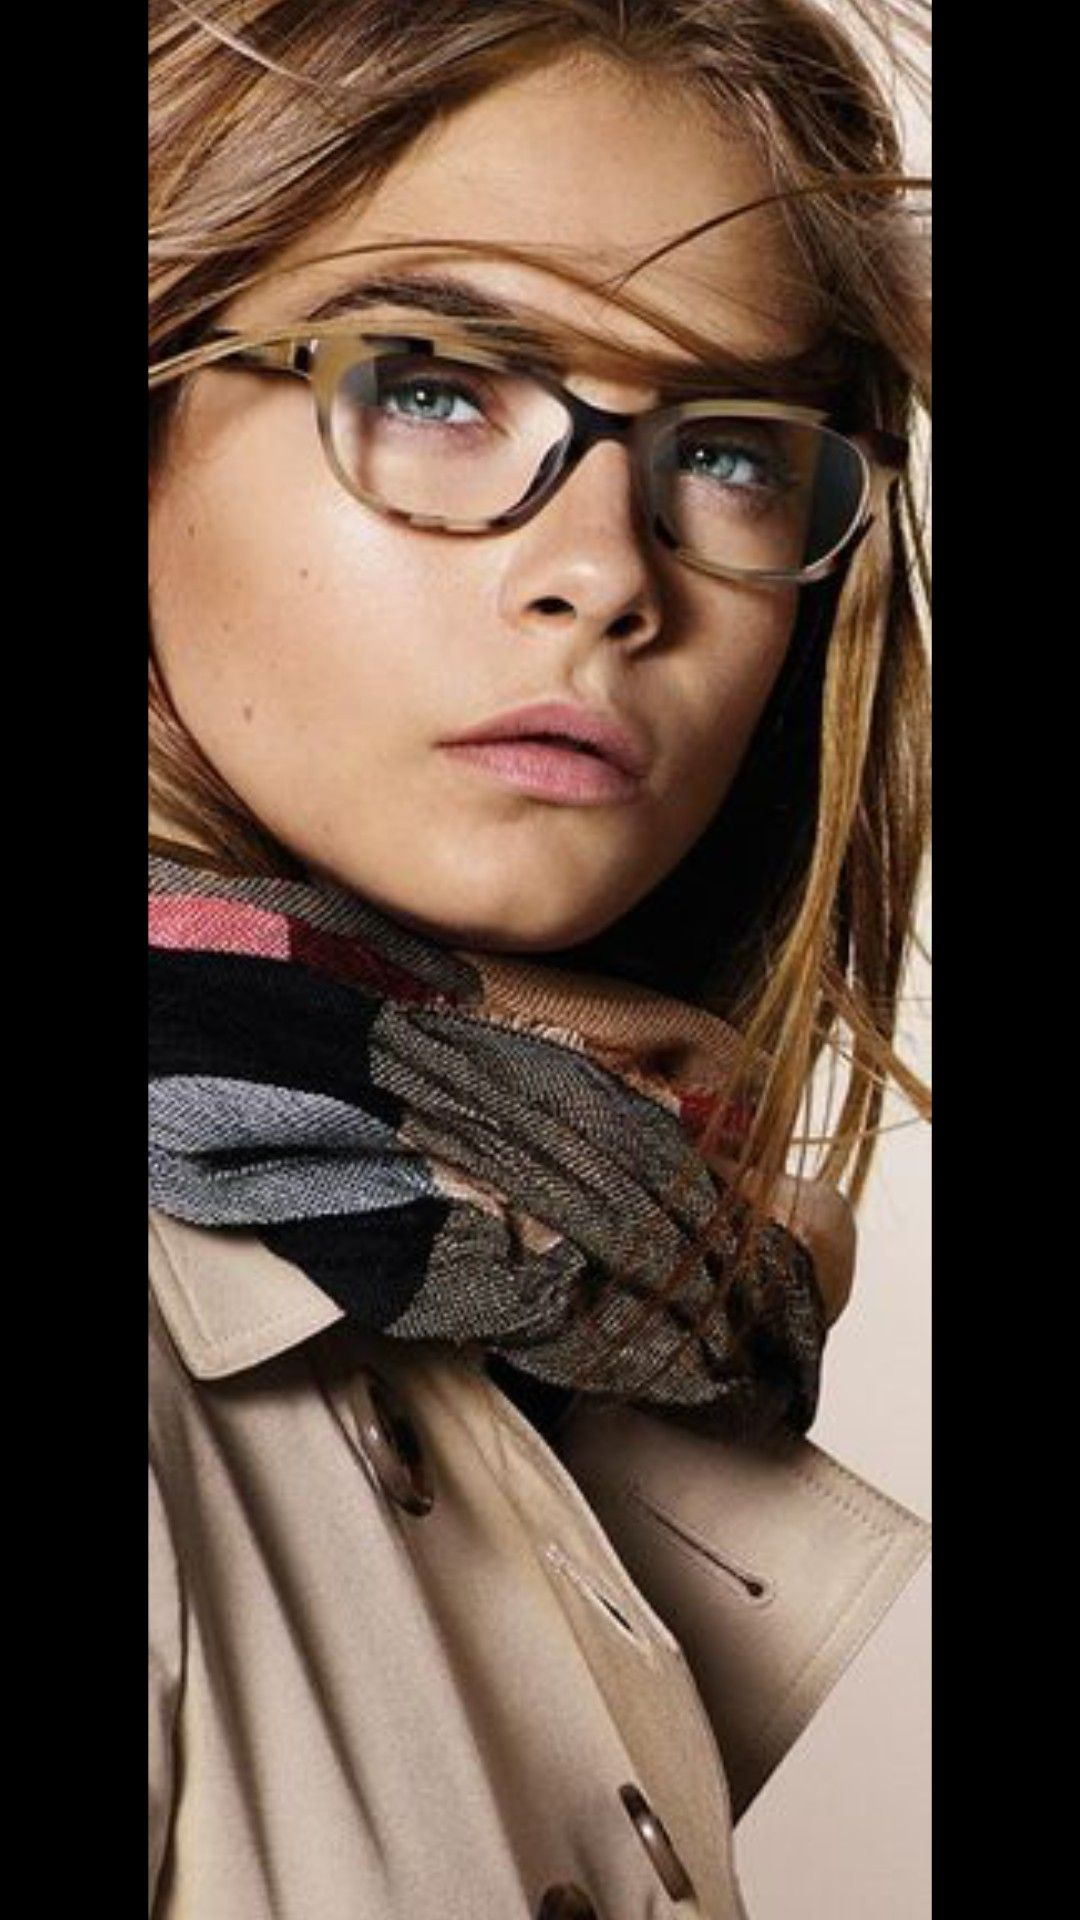 601525c86e6a Fashion Eye Glasses, Women's Trench Coats, Burberry Trench Coat, Burberry  Glasses, Burberry